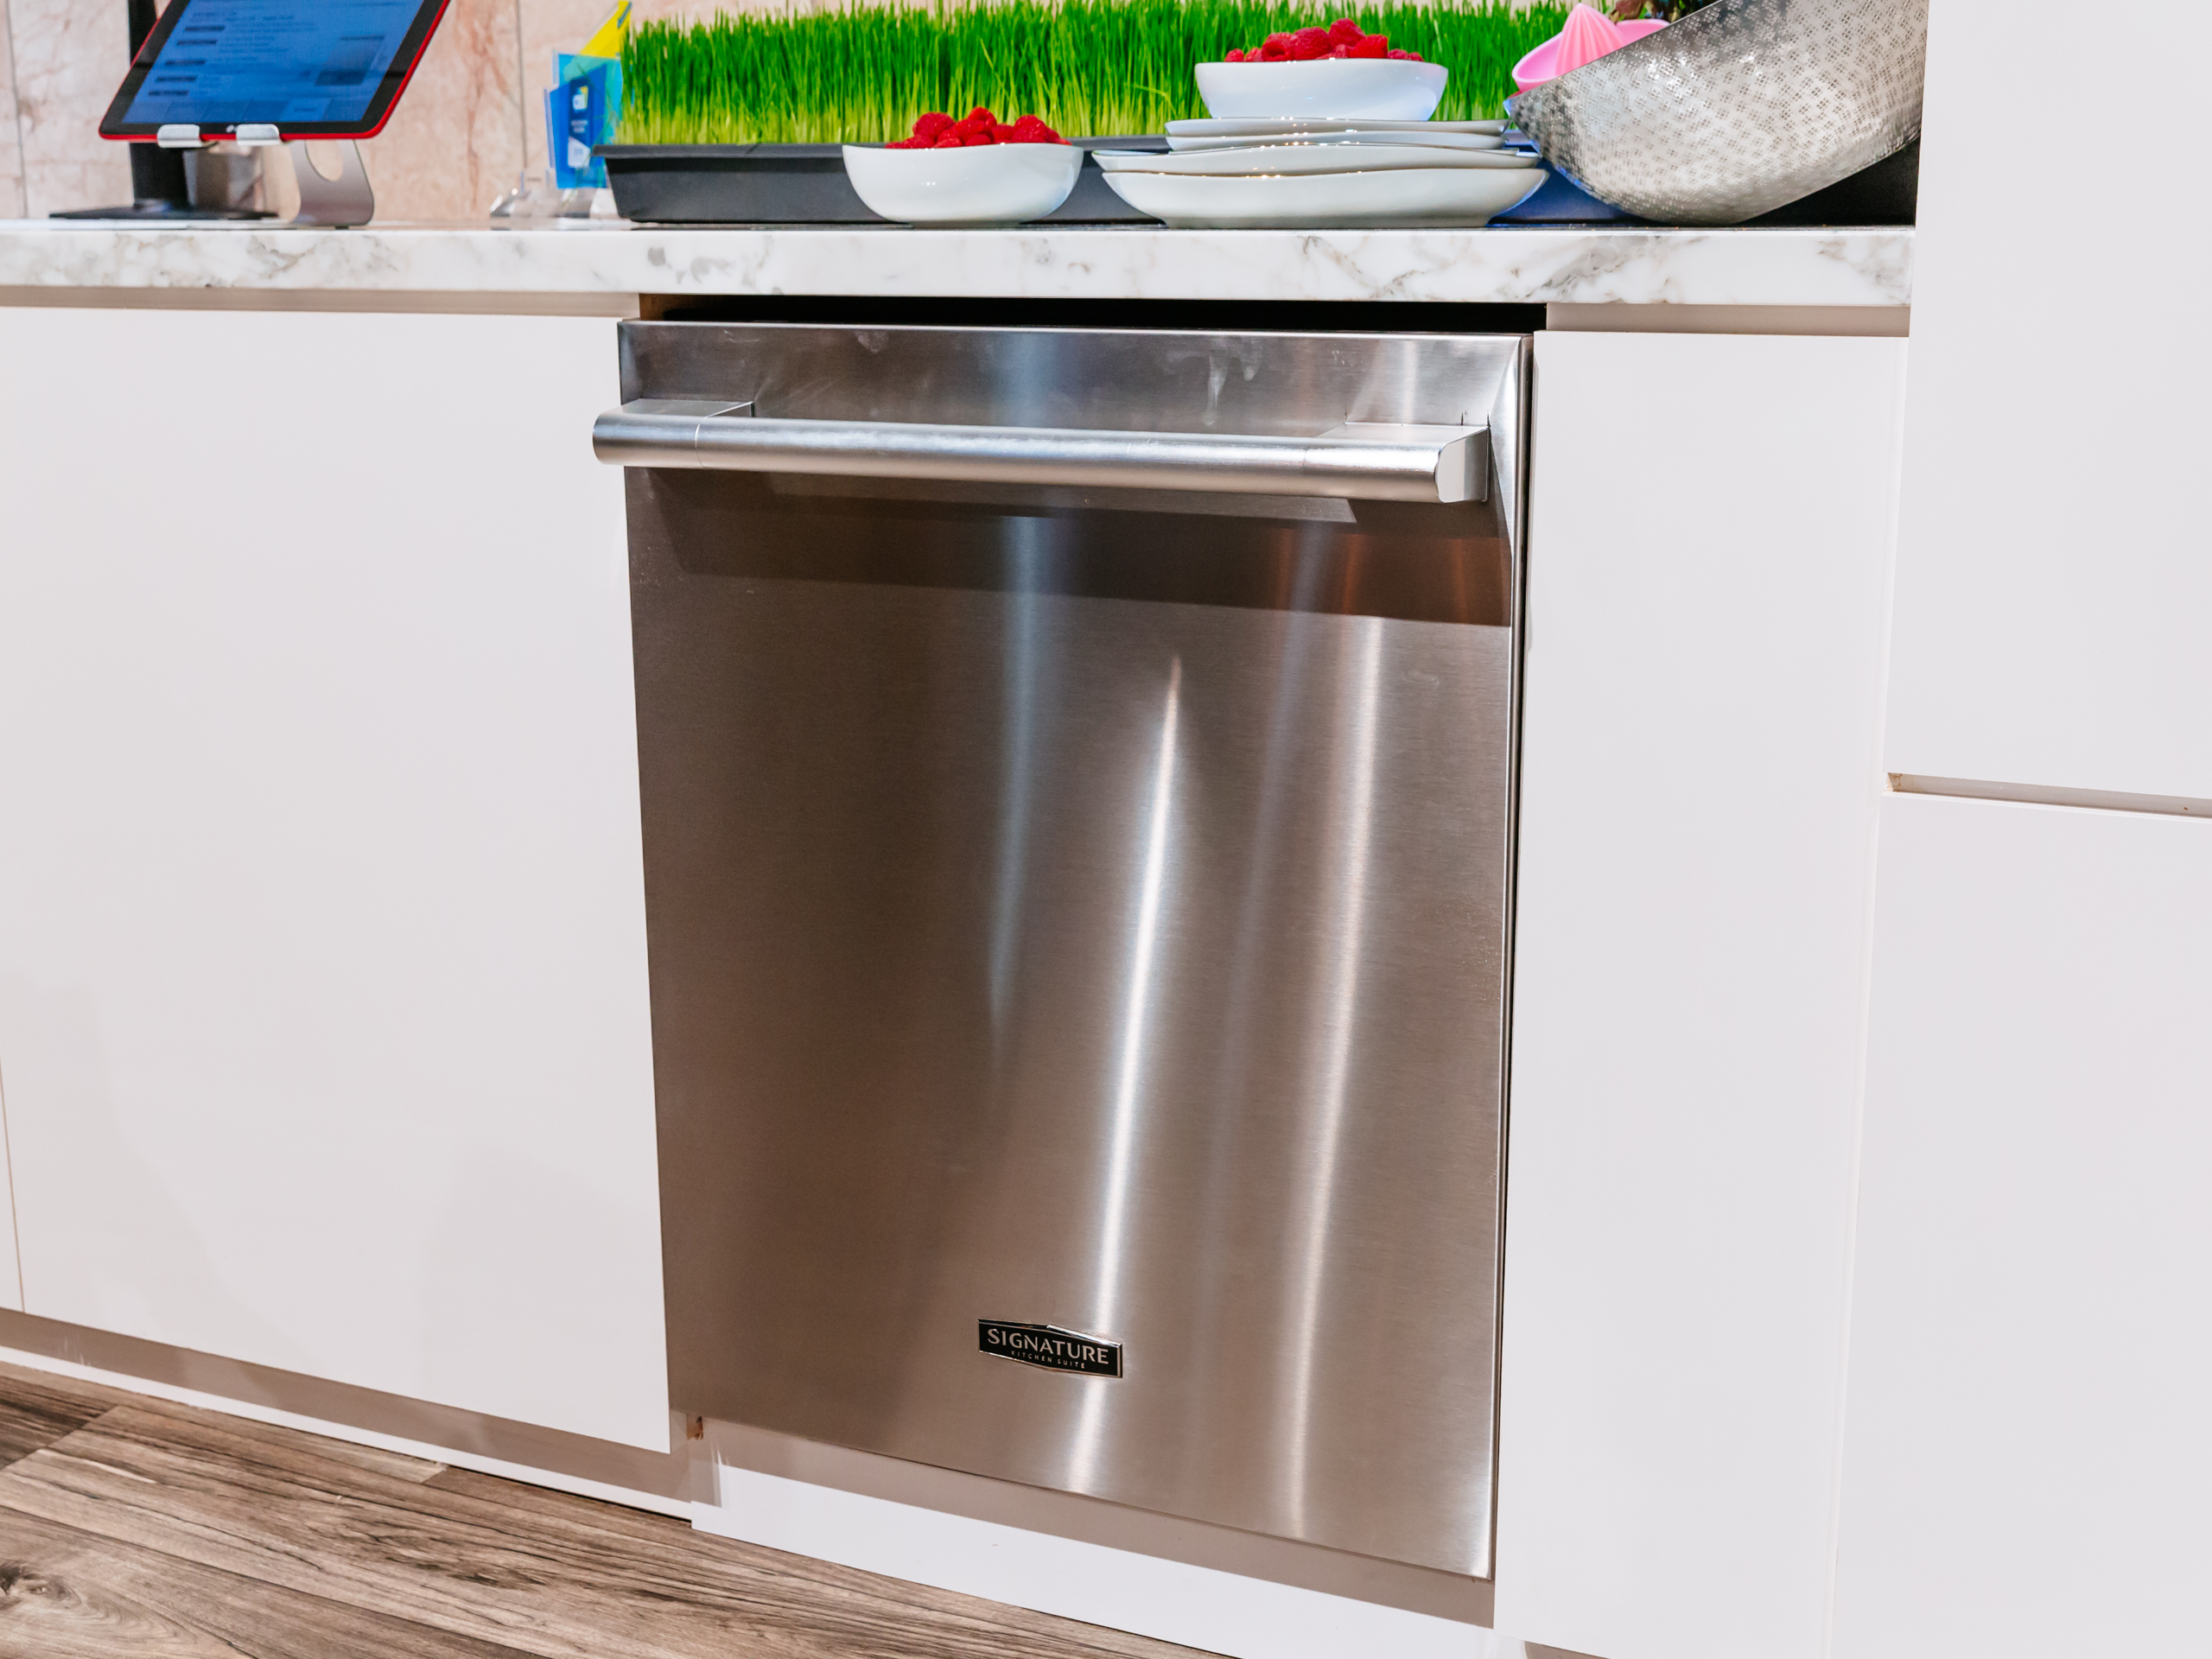 Signature Kitchen Suite Fully-Integrated Dishwasher UPDF9904ST